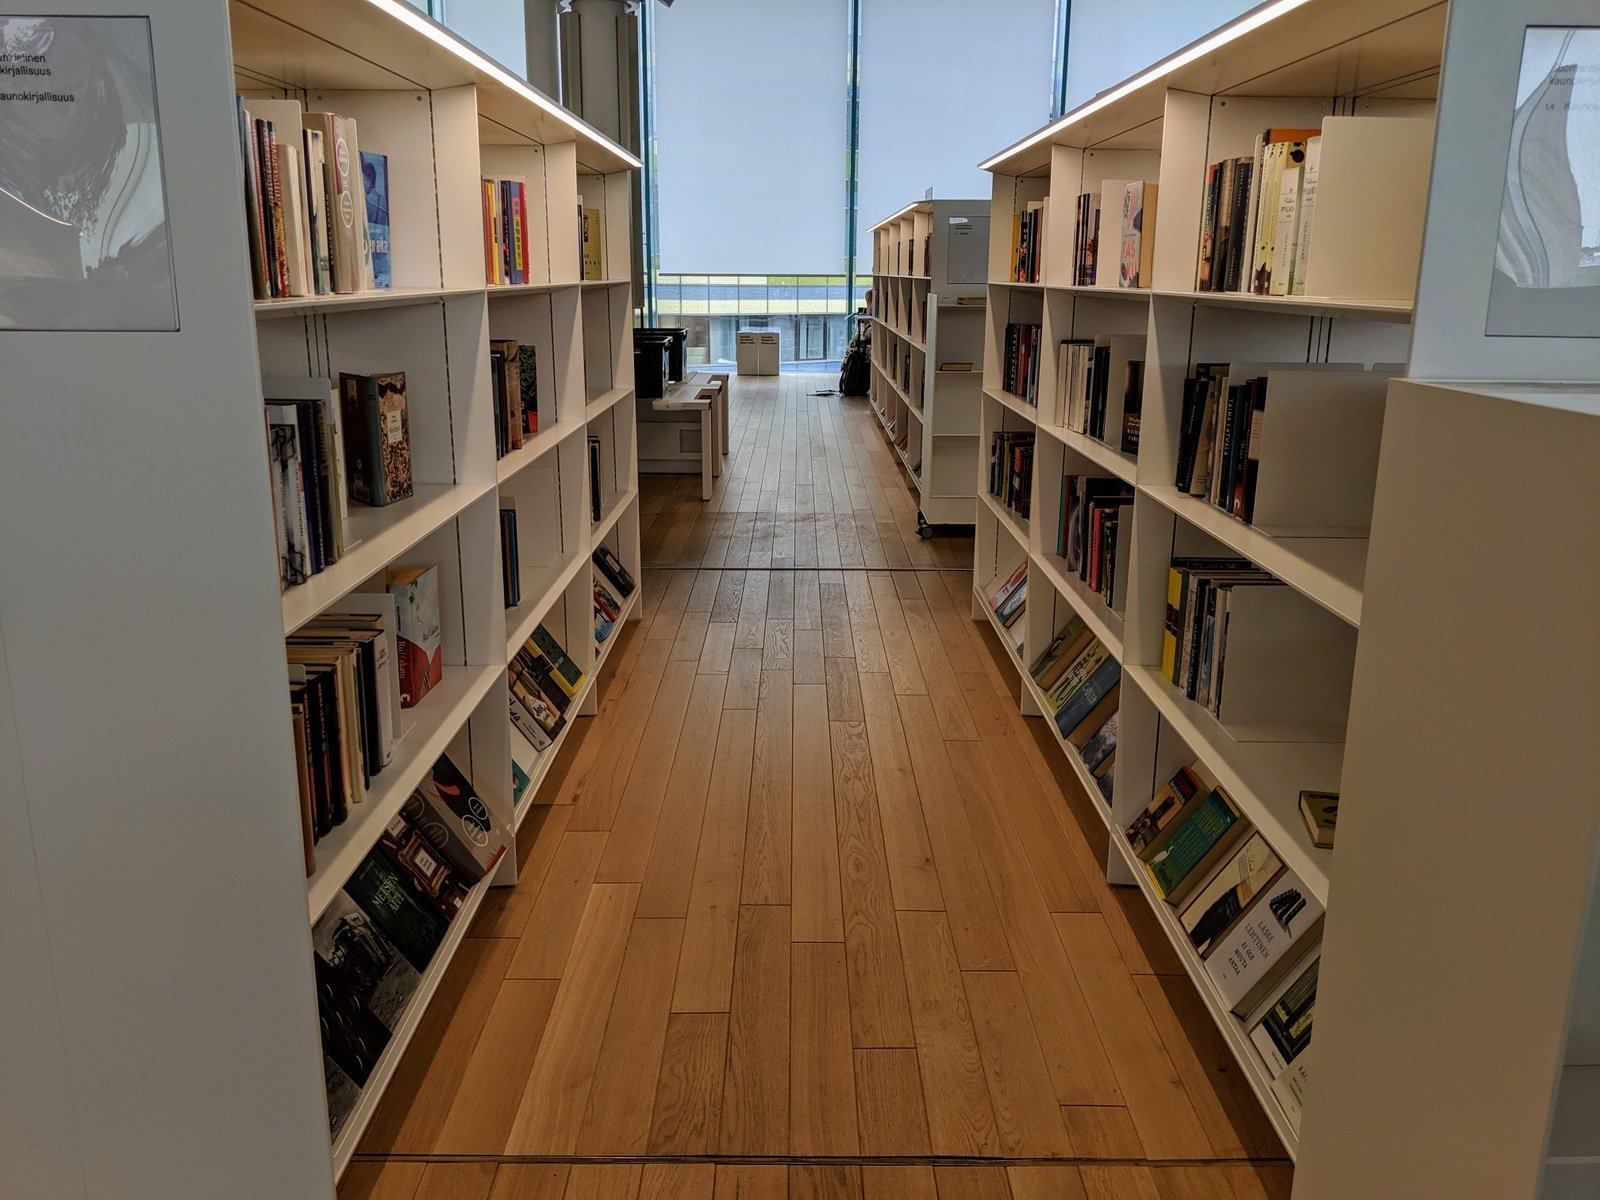 bookshelves in public library in Helsinki, Finland